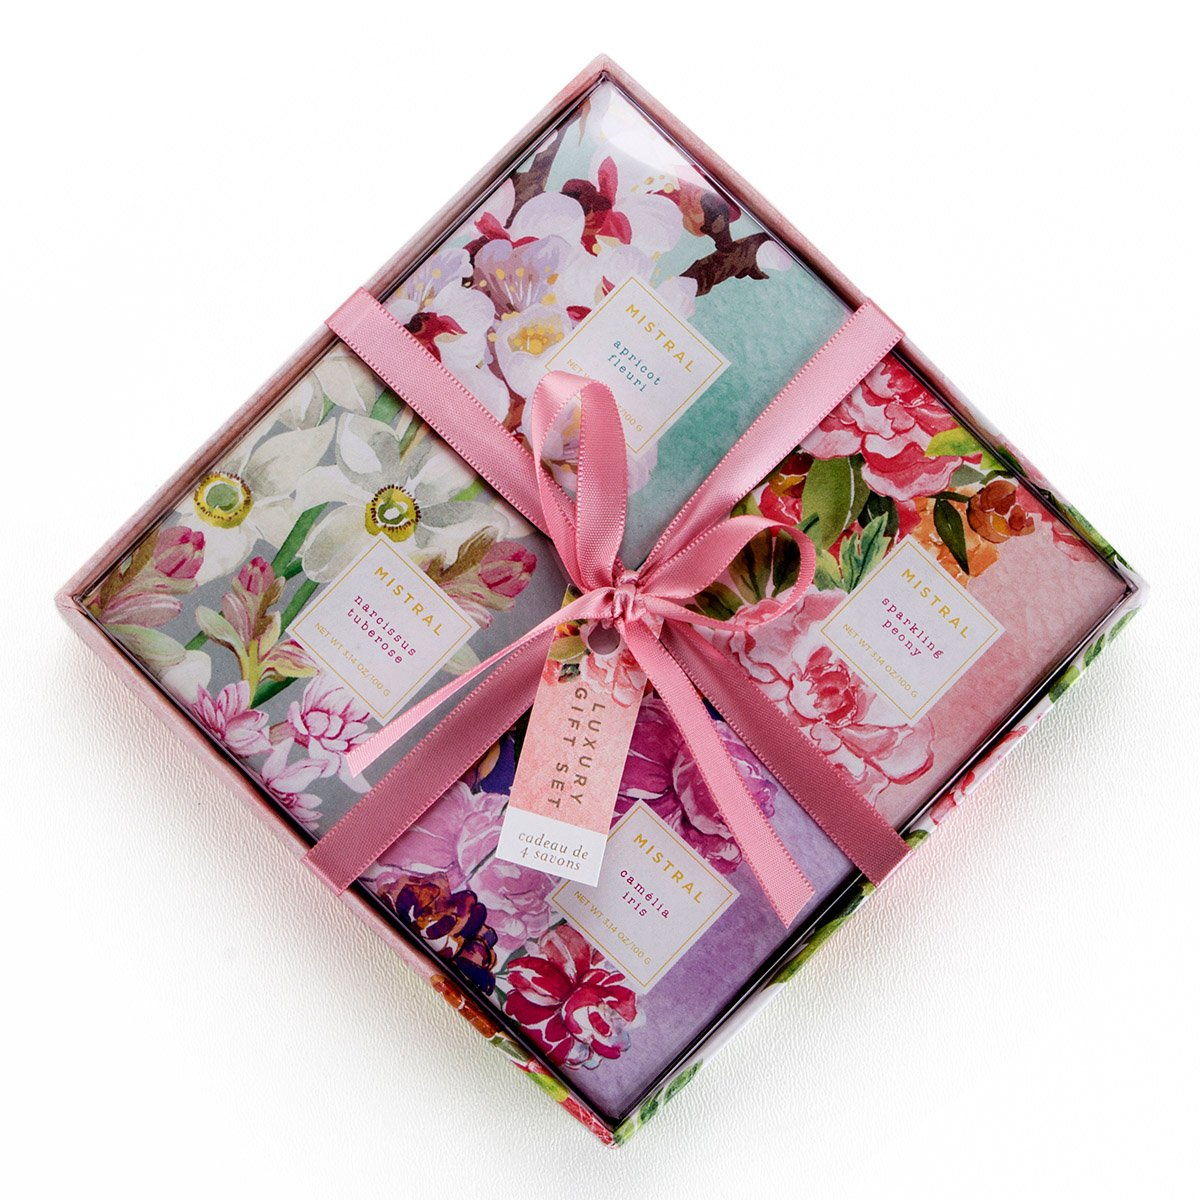 4 French Soap Gift Box